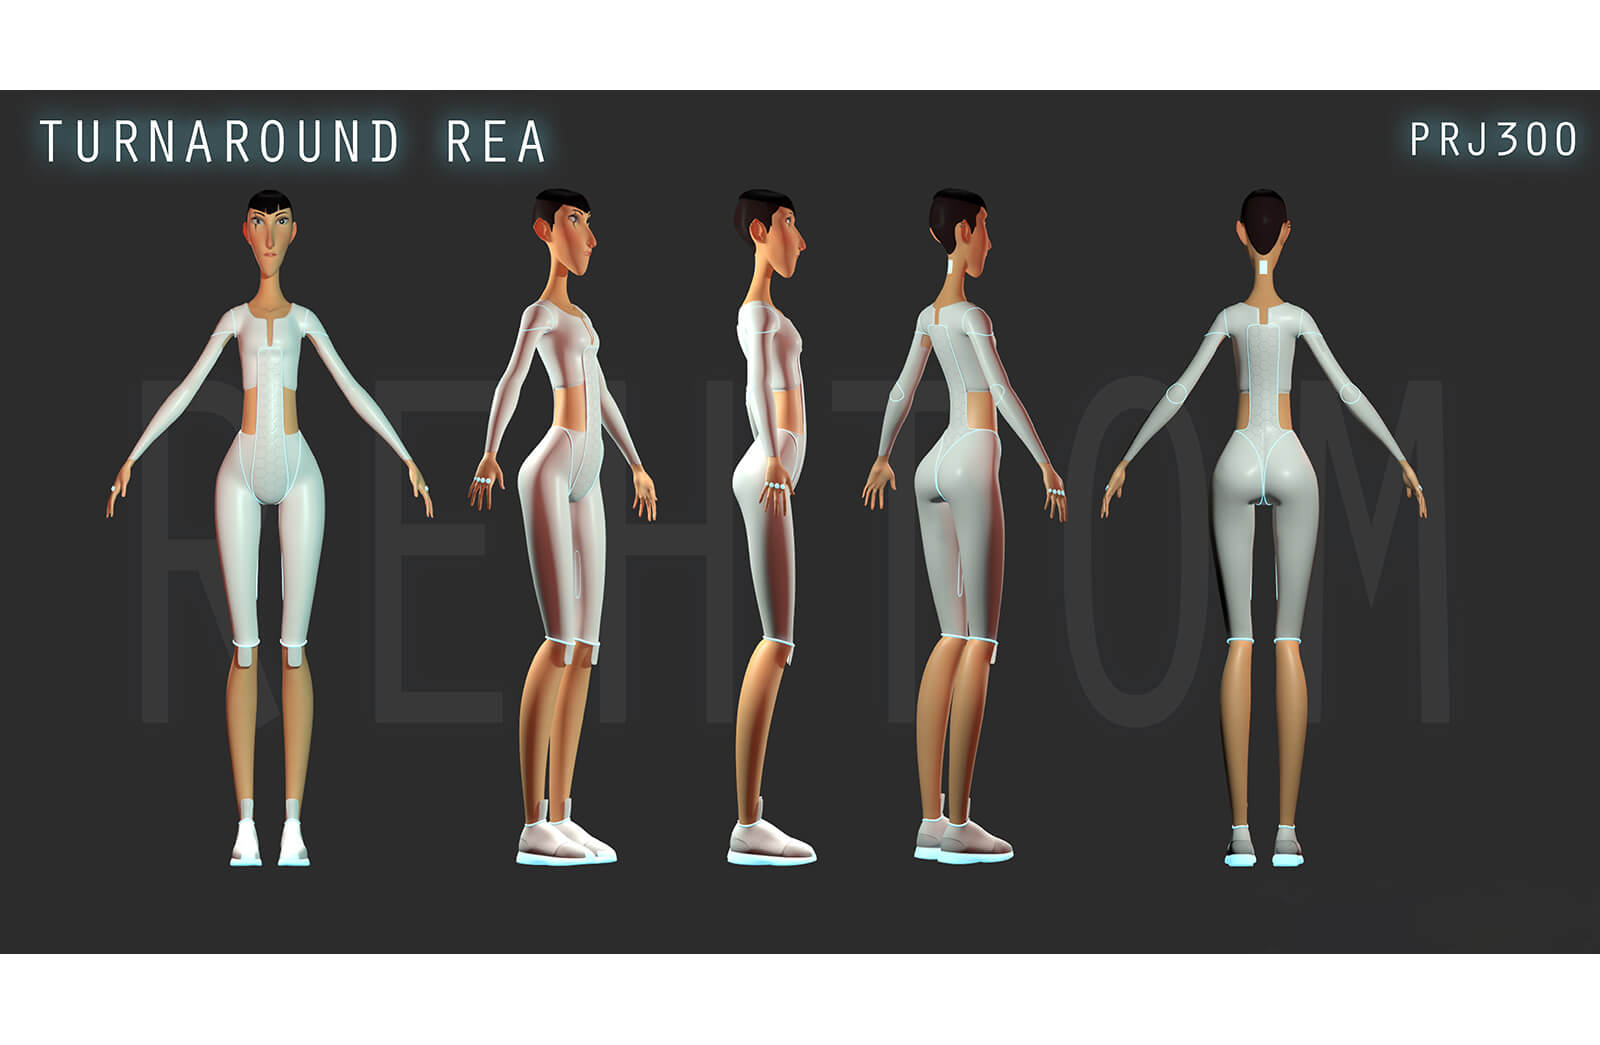 Turnaround 3D character model of a tall, thin woman standing in futuristic white clothing from different angles